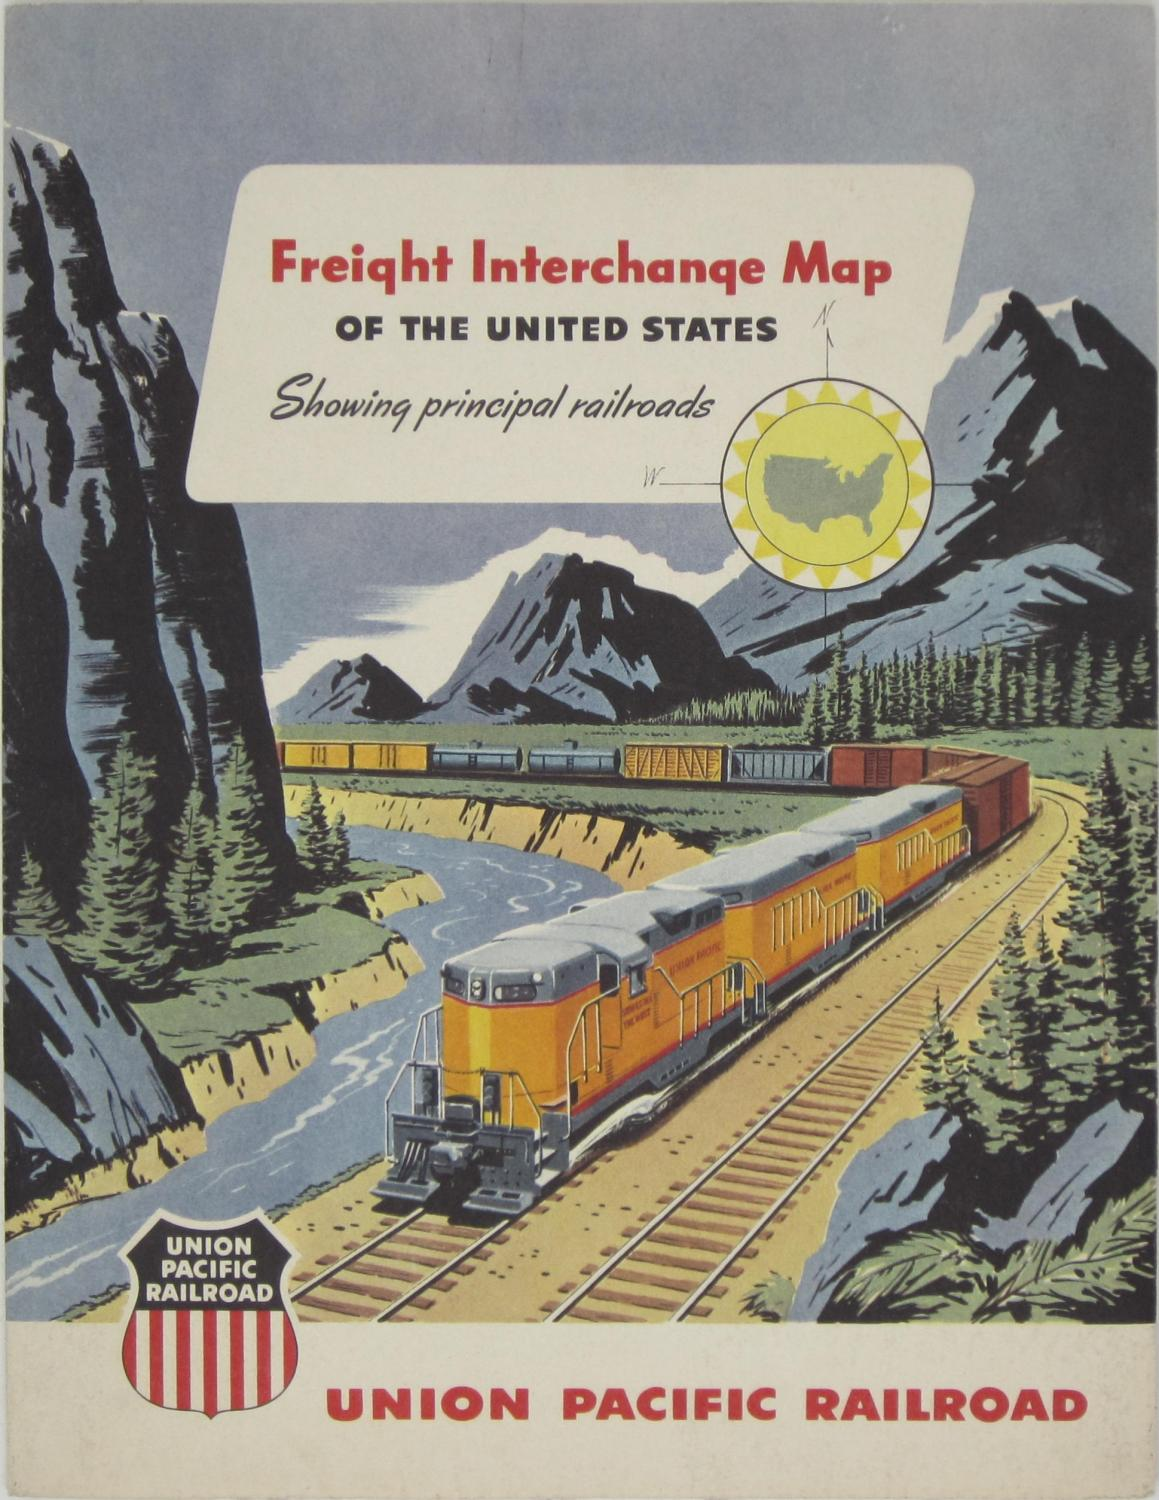 Freight Interchange Map of the United States...